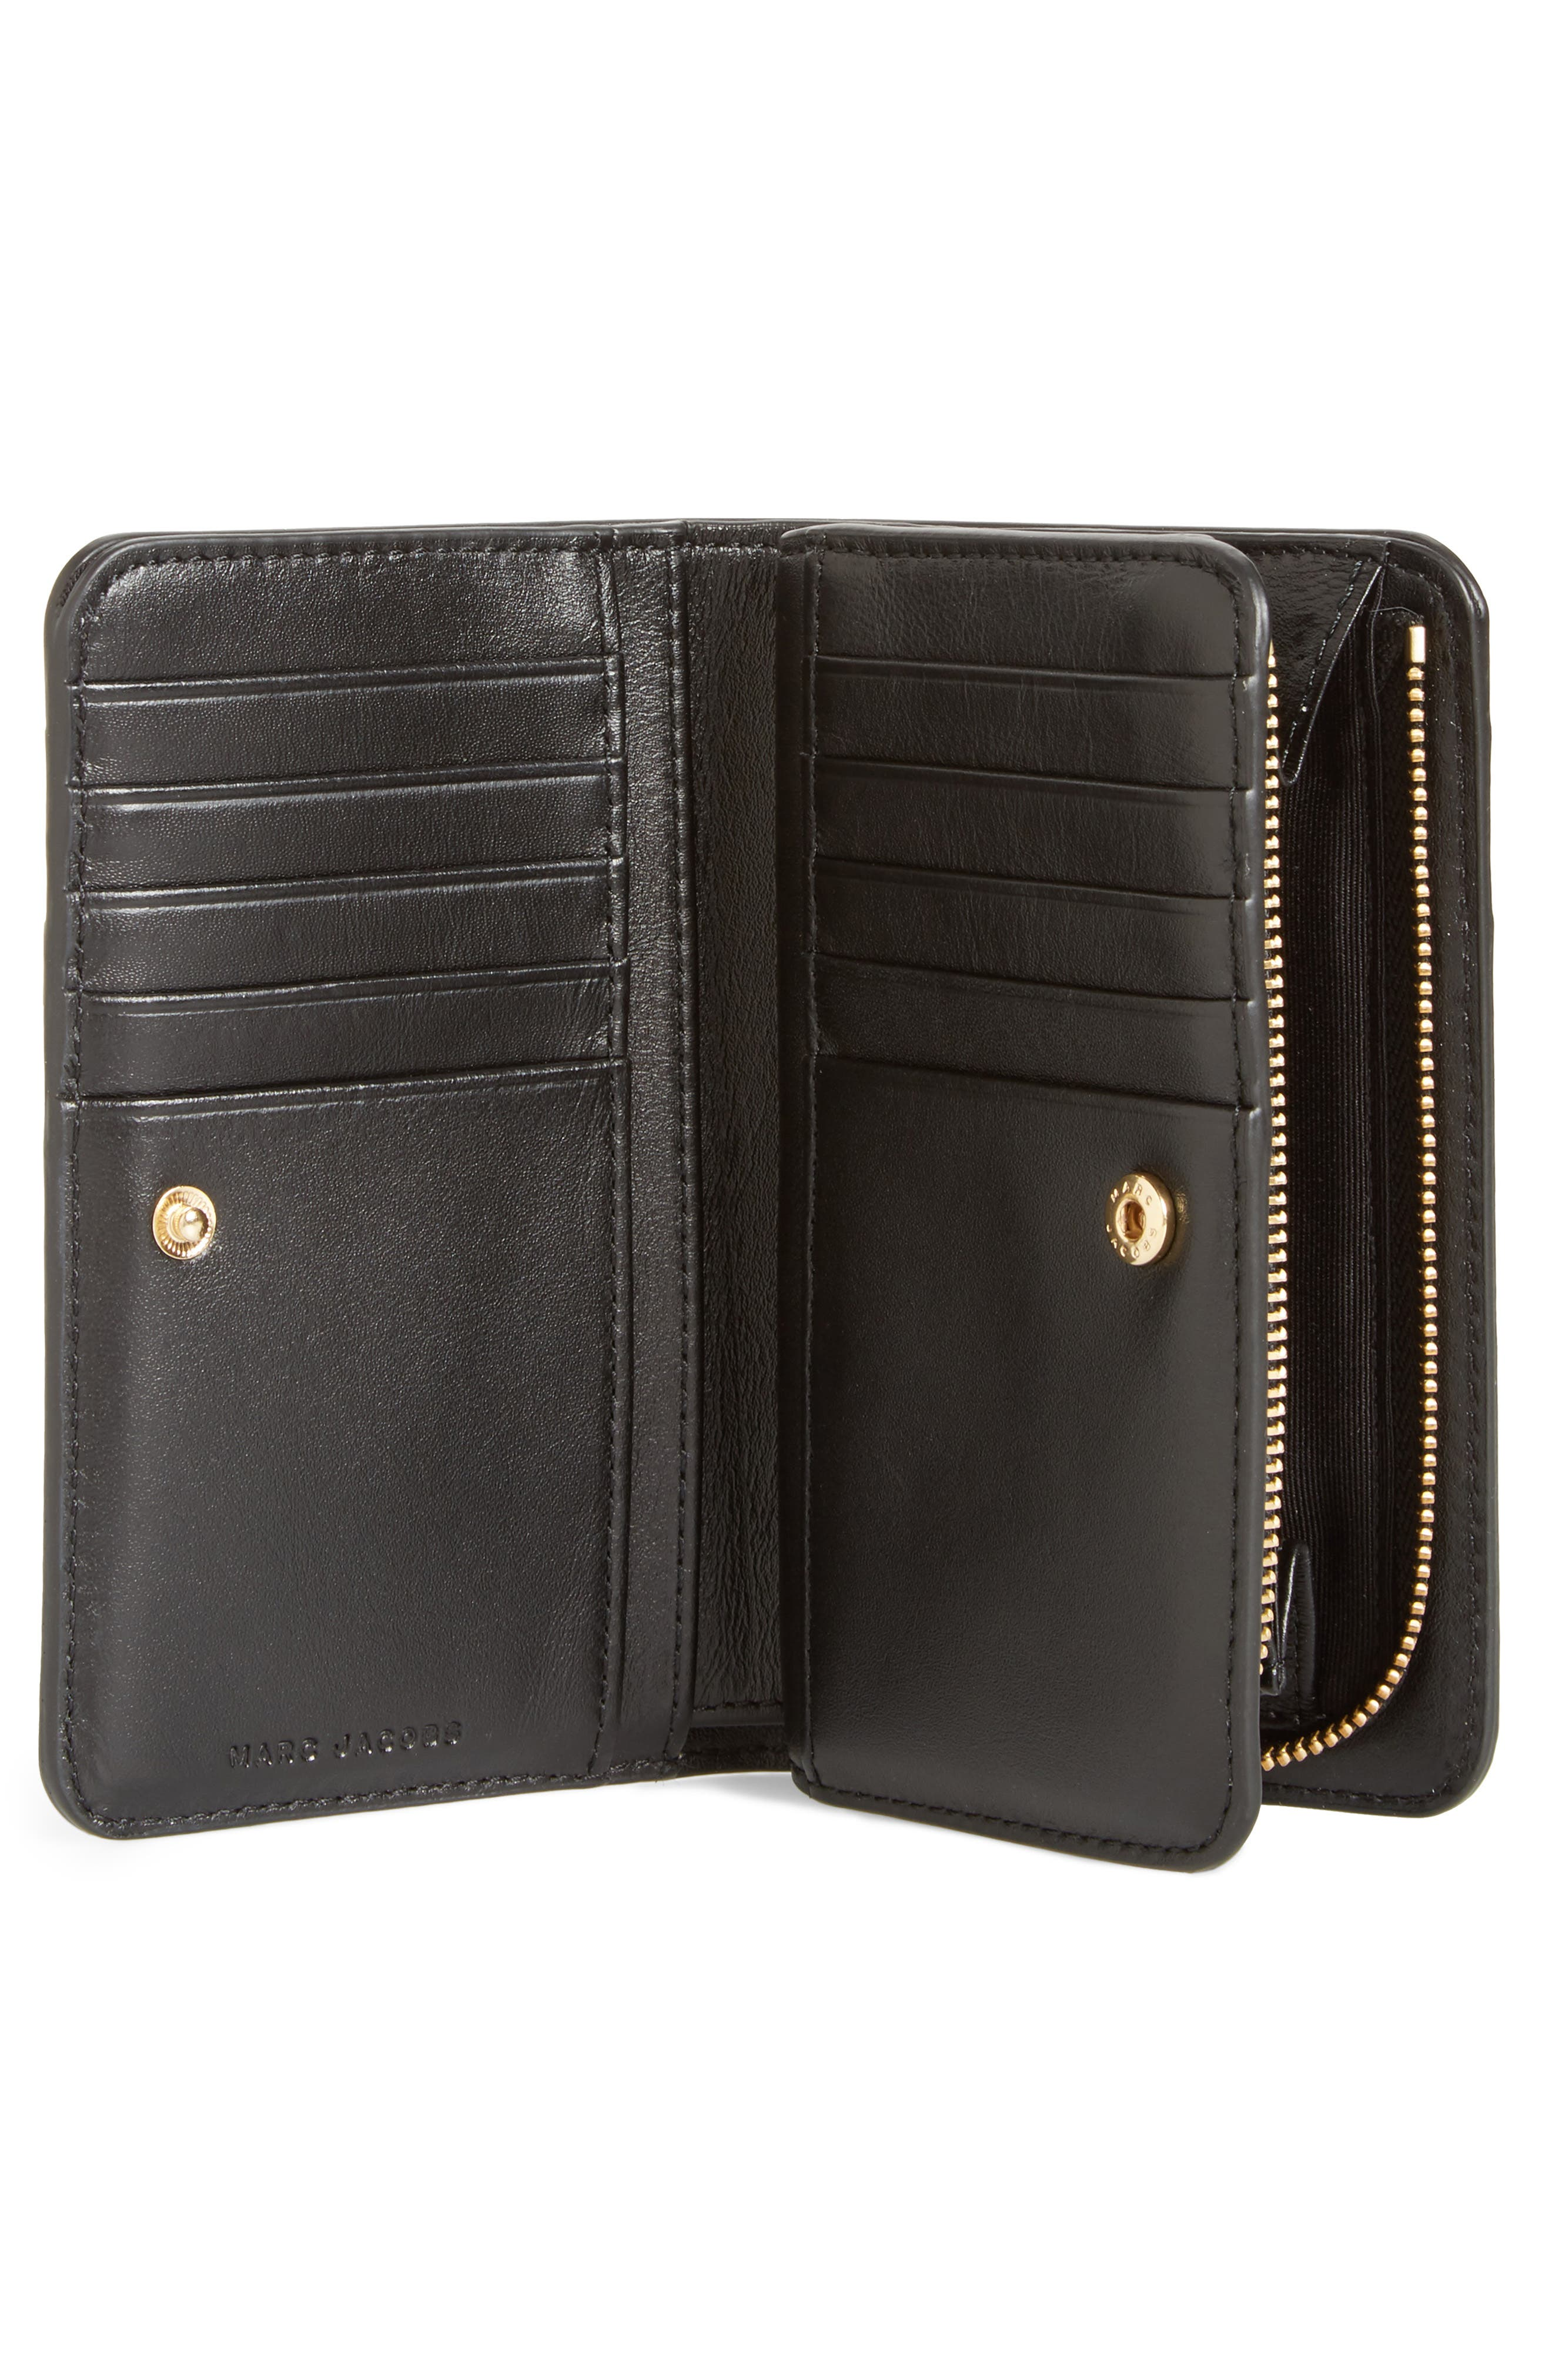 Saffiano Leather Compact Wallet,                             Alternate thumbnail 8, color,